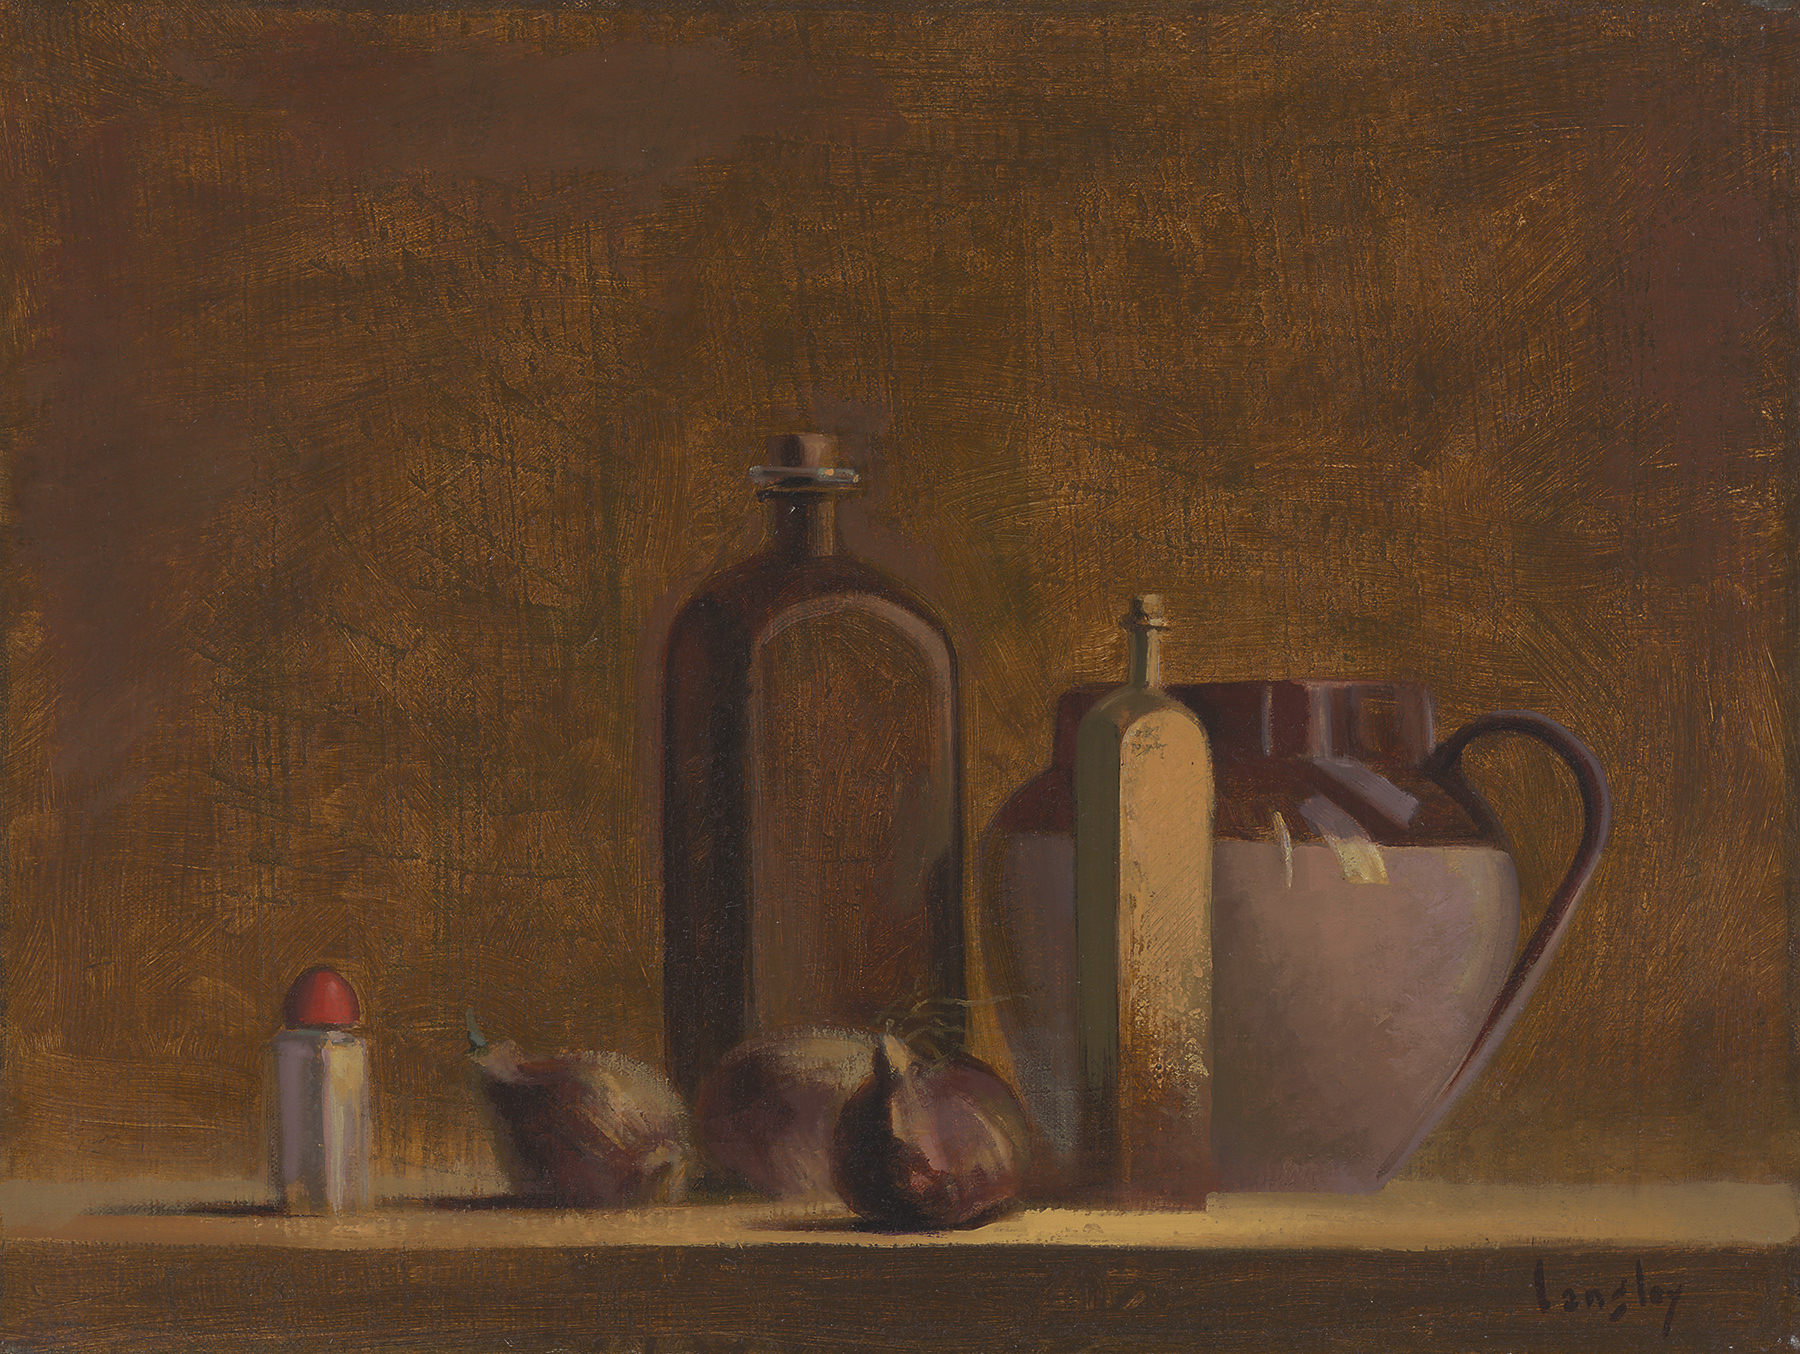 Langley nature morte with naples yellow.jpg